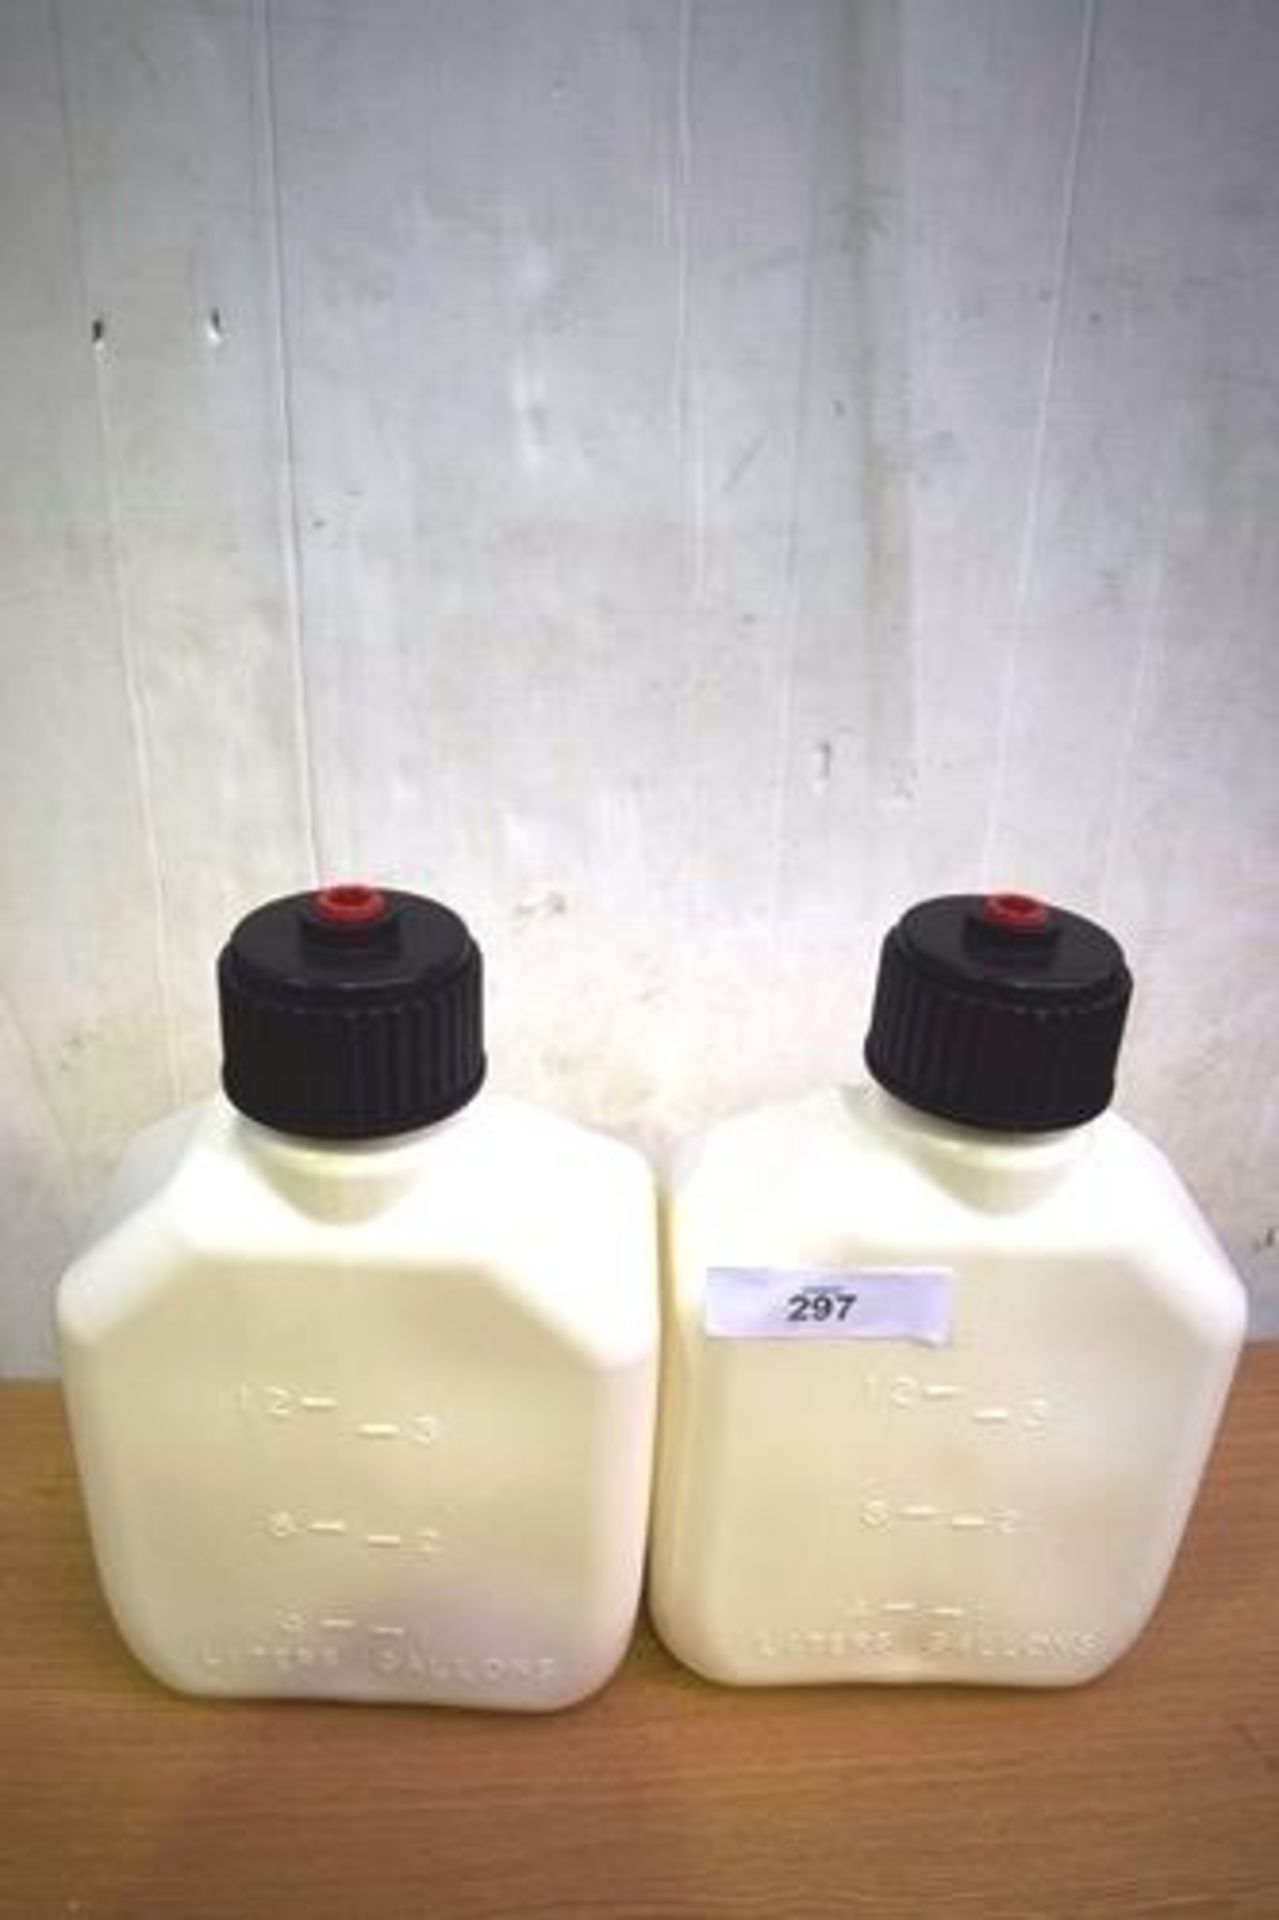 2 x VP Racing 3 gallon square white jugs, P.N. 4172 - New (GS5) - Image 2 of 2